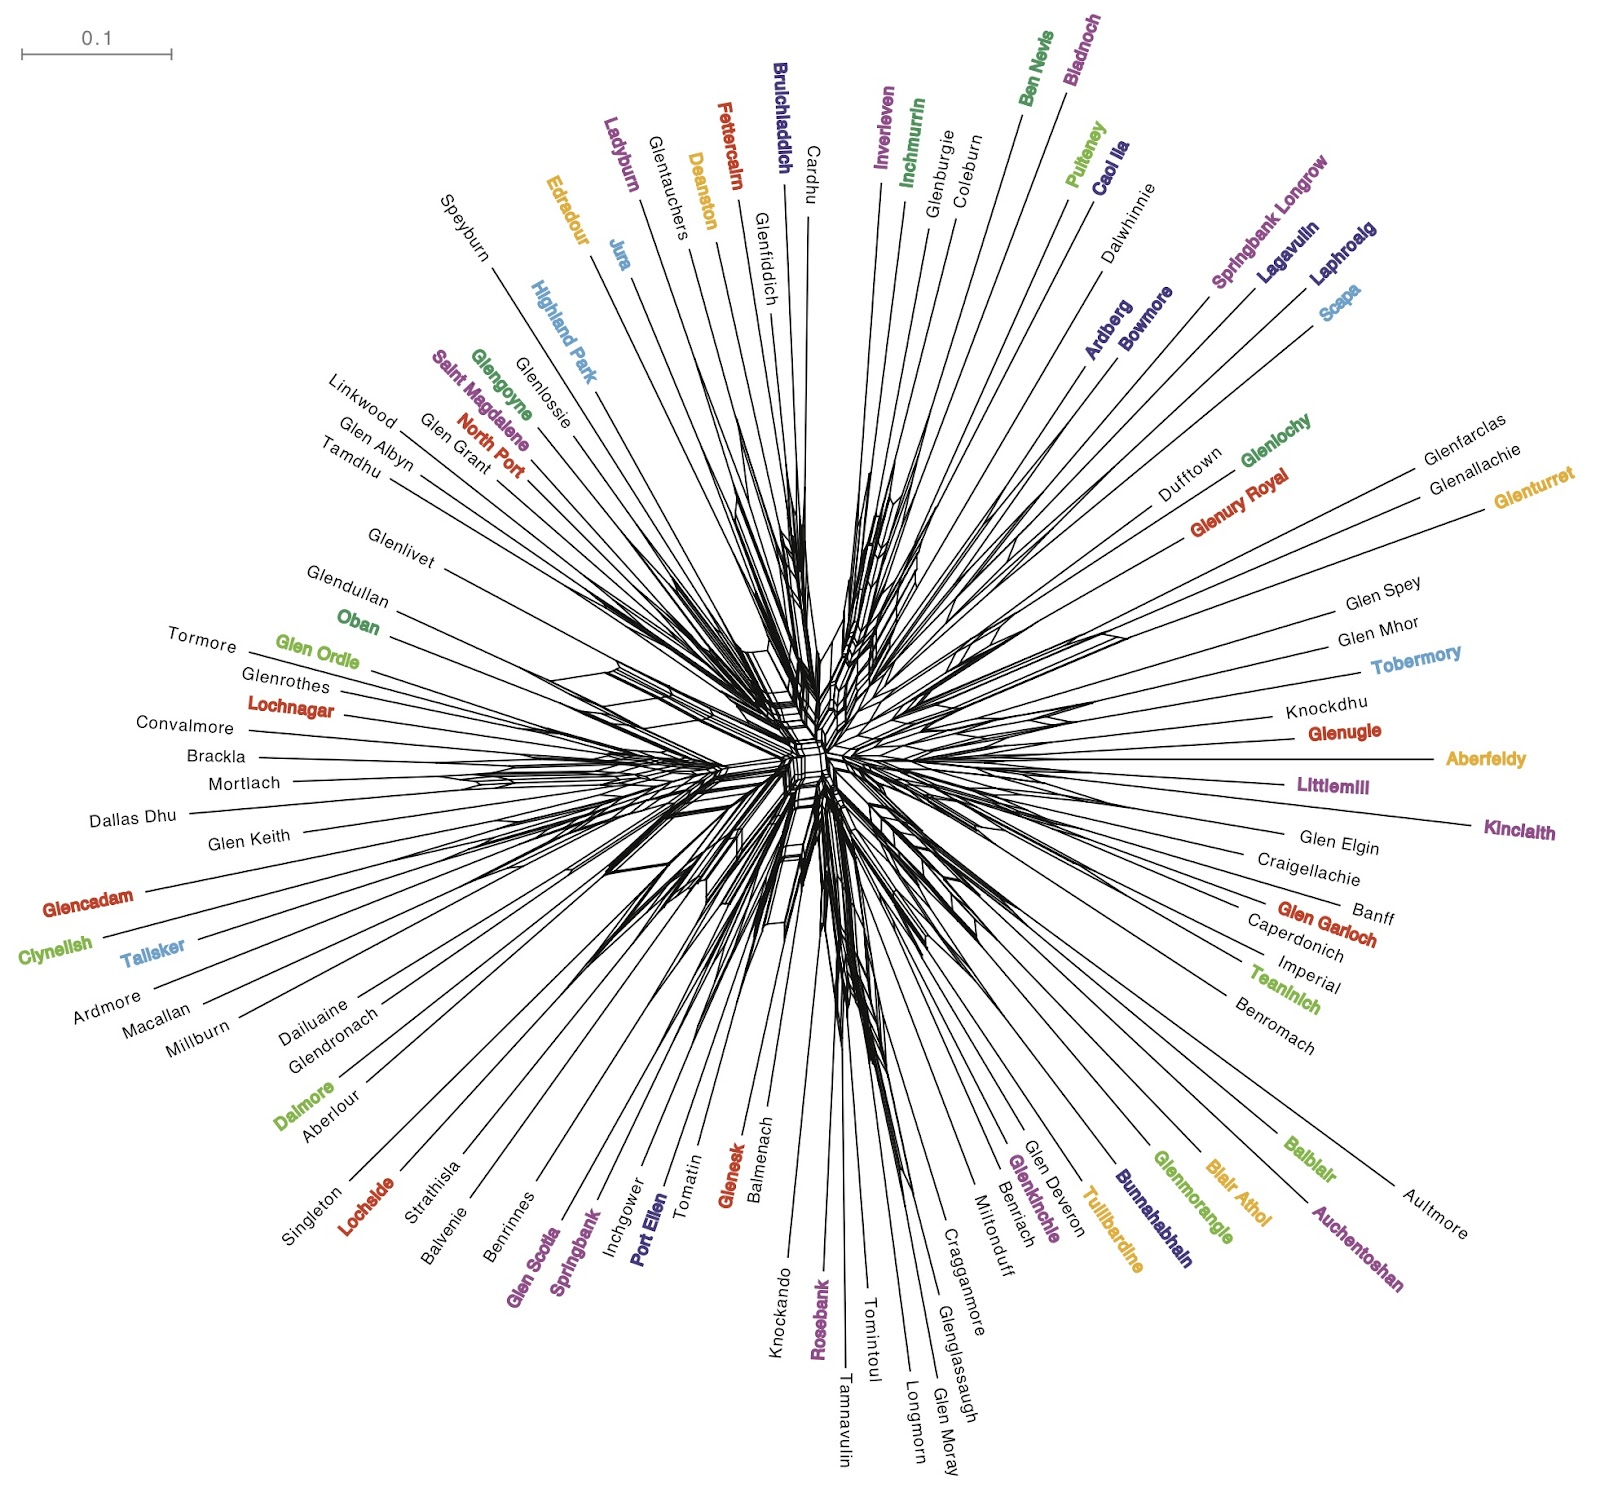 The Genealogical World Of Phylogenetic Networks Network